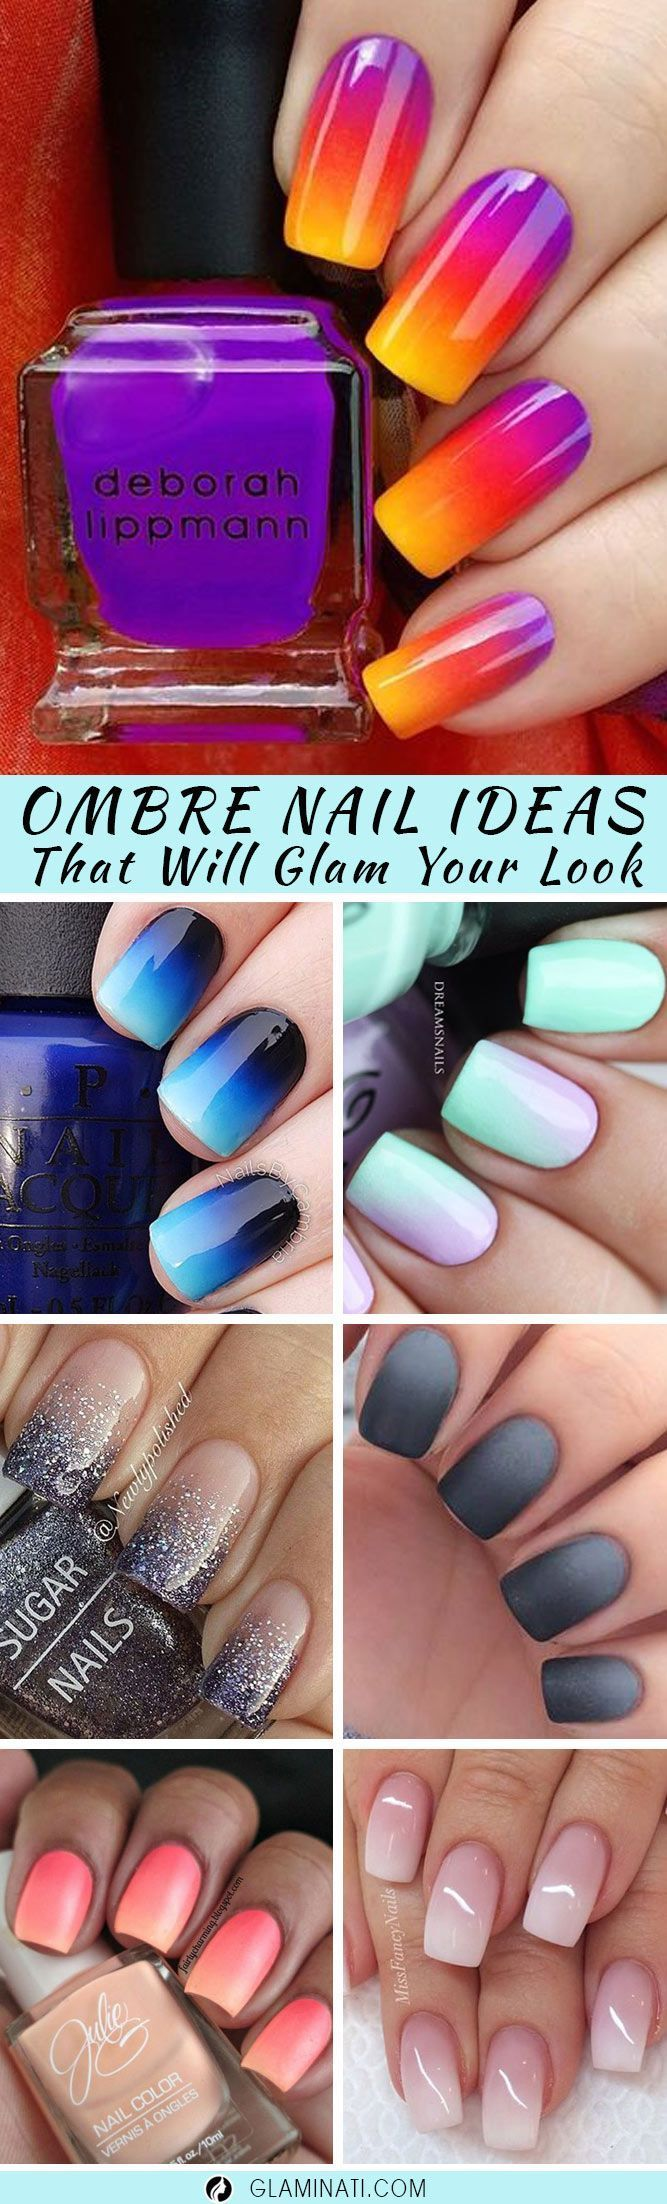 45 Glam Ideen für Ombre Nails Plus Tutorial Omb+#achieve